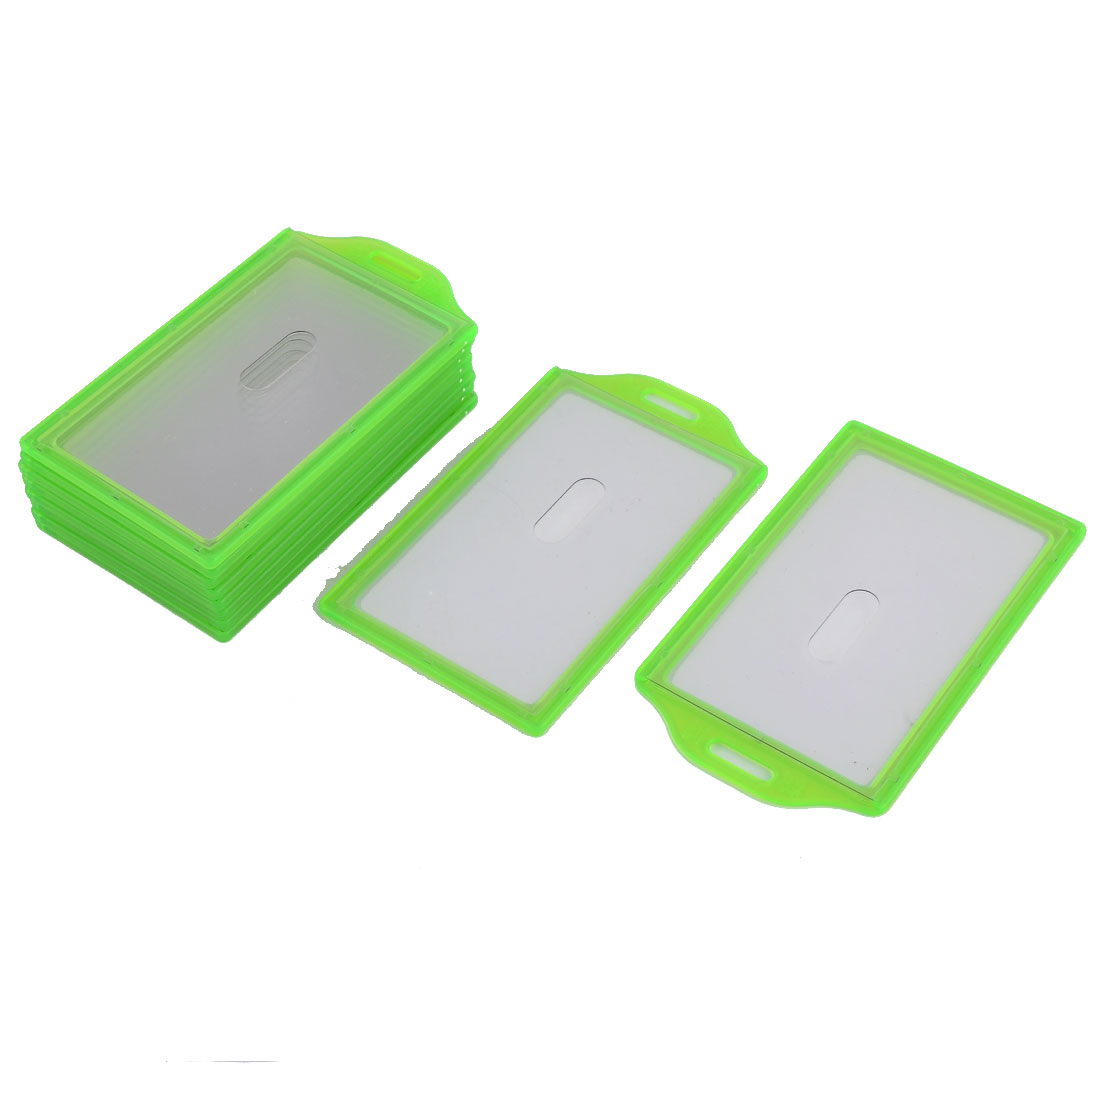 Exhibition Vertical Name Tag ID Badge Card Holders Container Green 10pcs